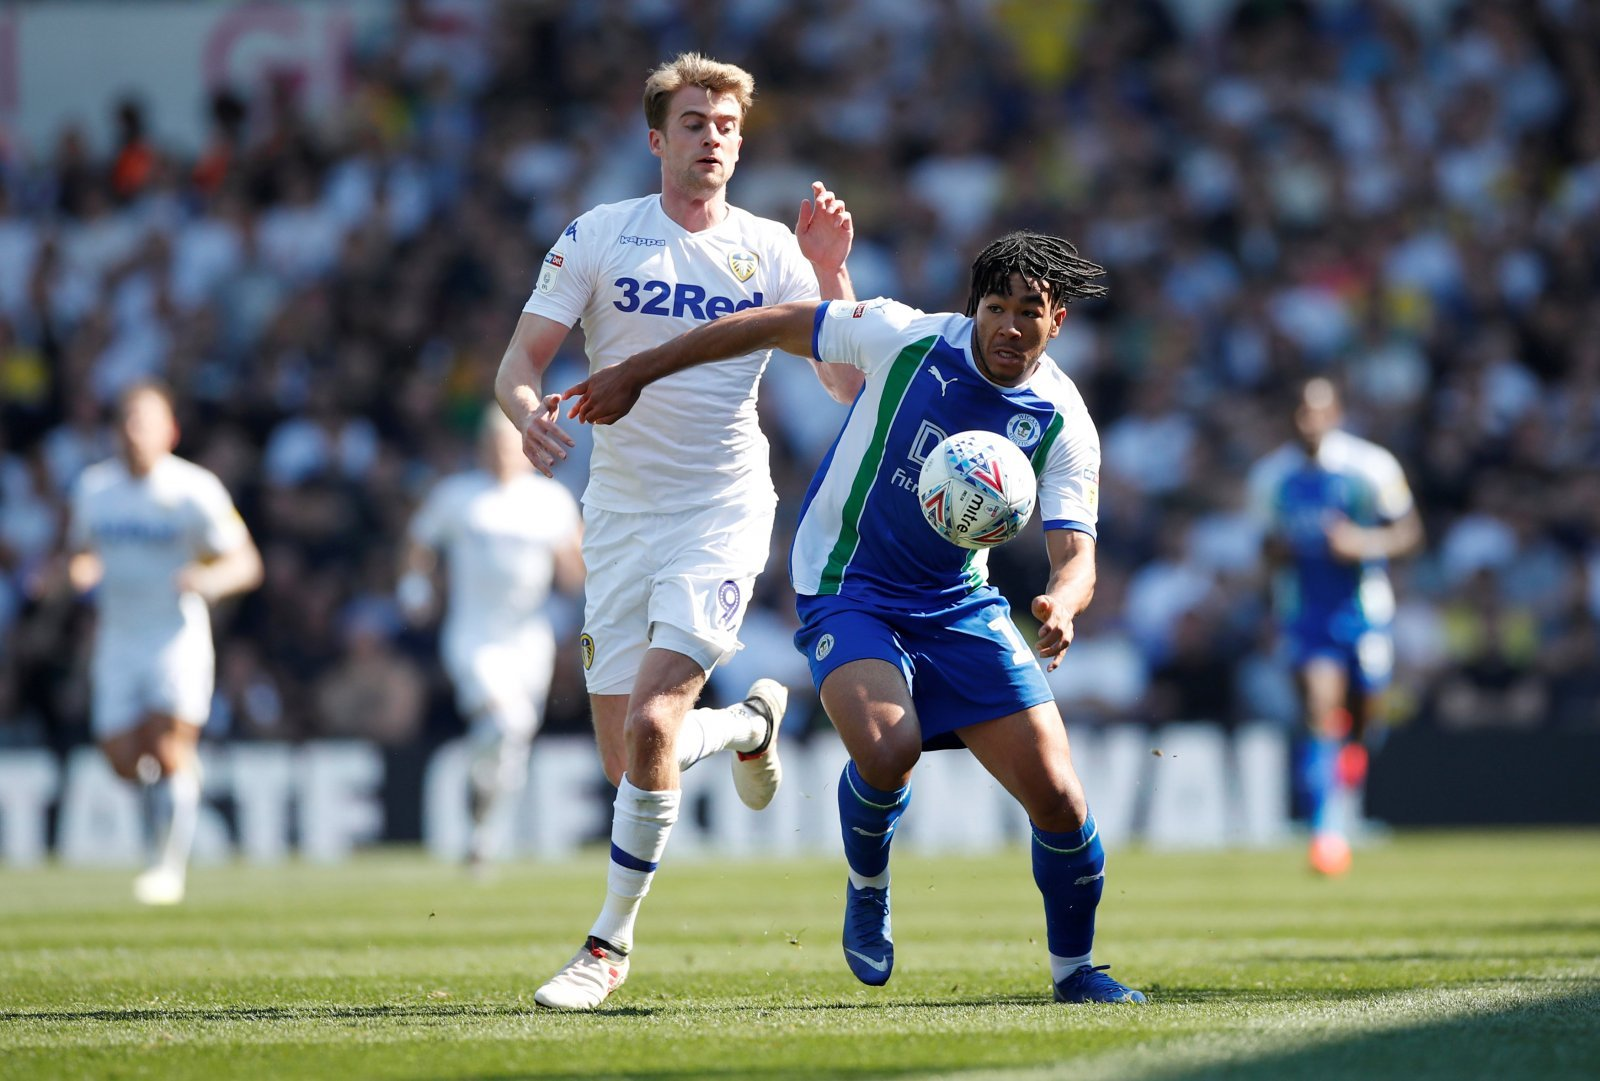 Chelsea: Reece James is set to earn a new contract over the coming months